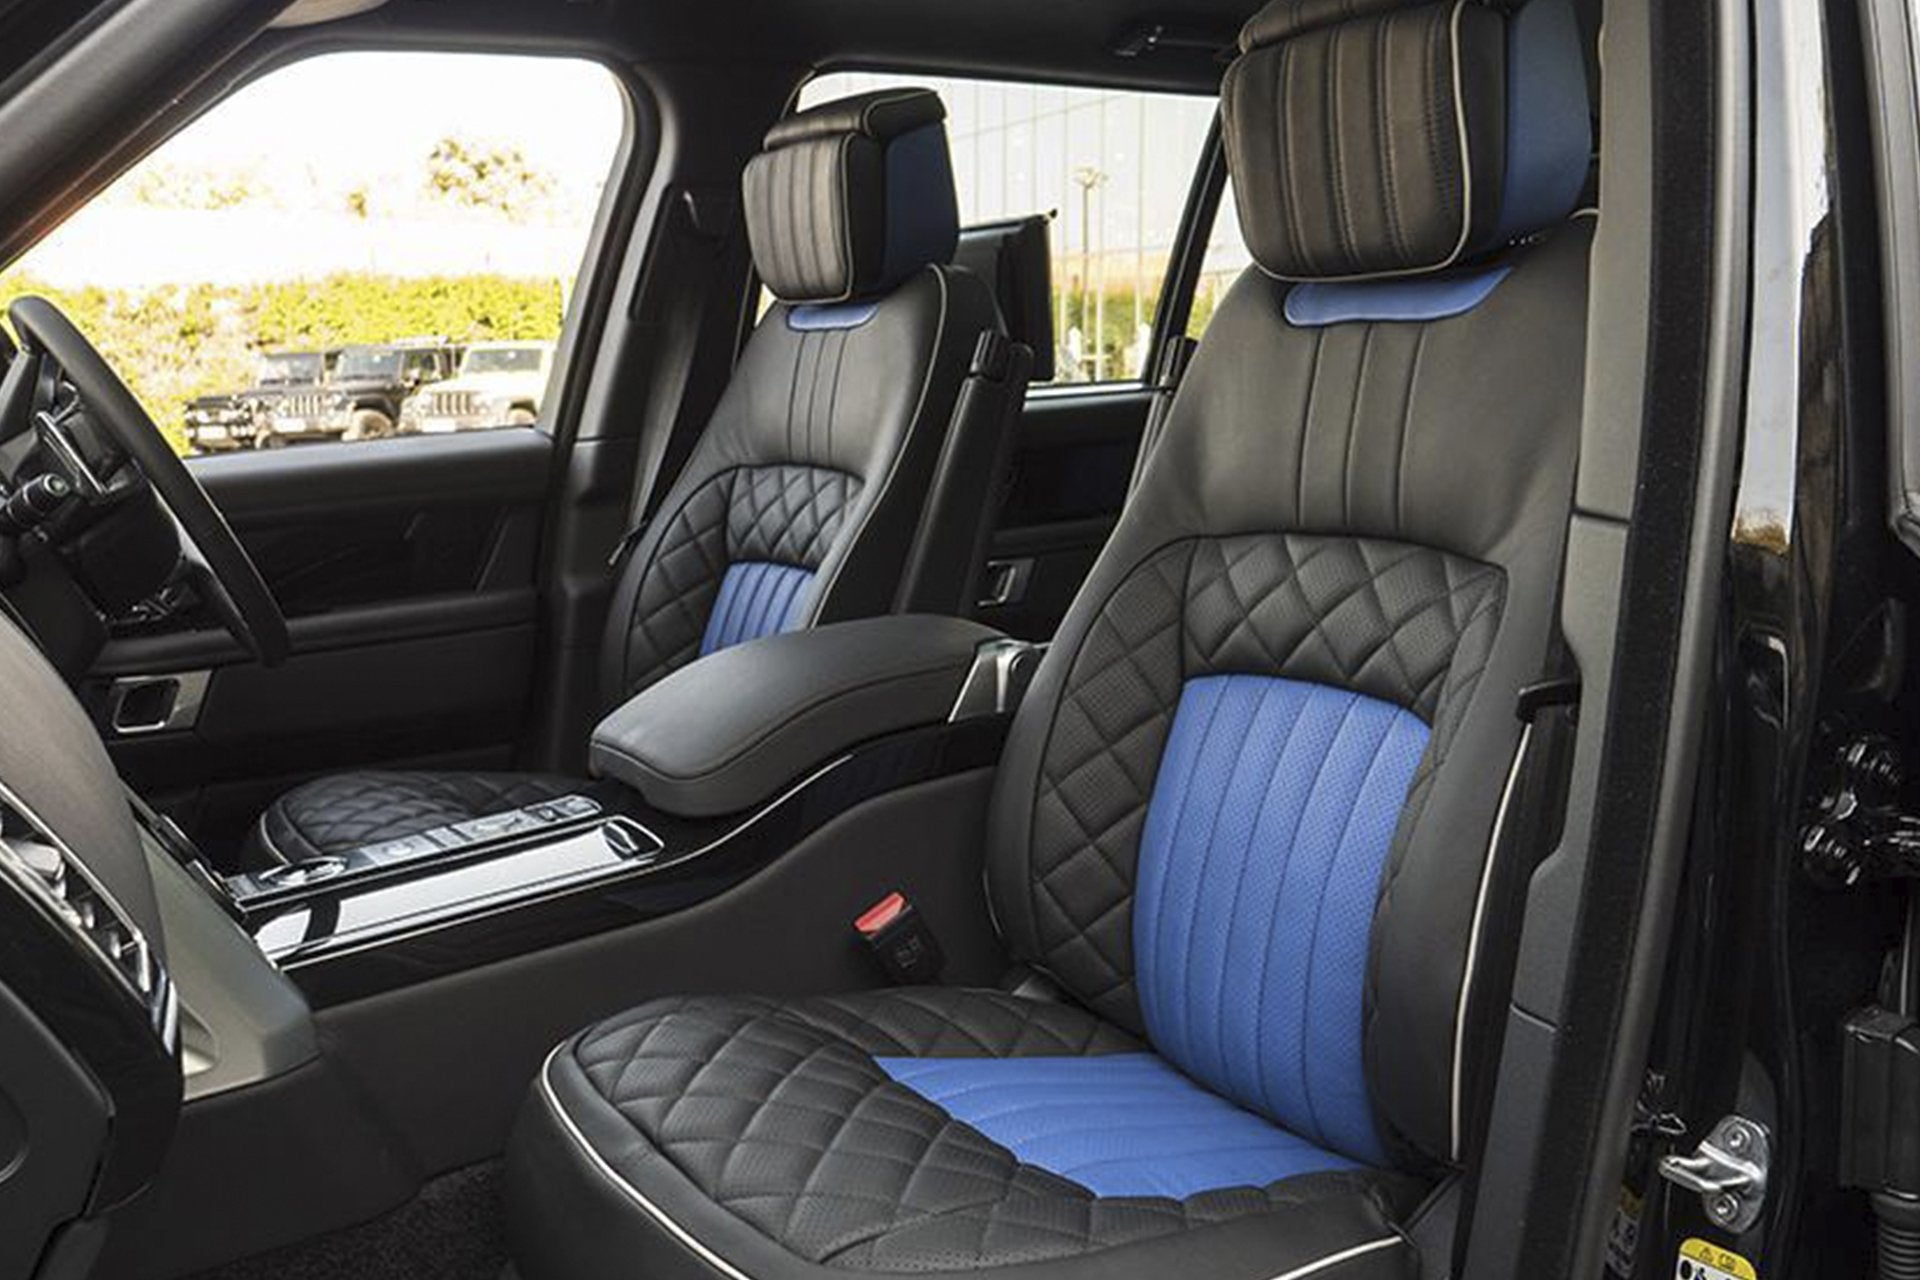 Range Rover (2018-Present) Leather Interior by Kahn - Image 1724